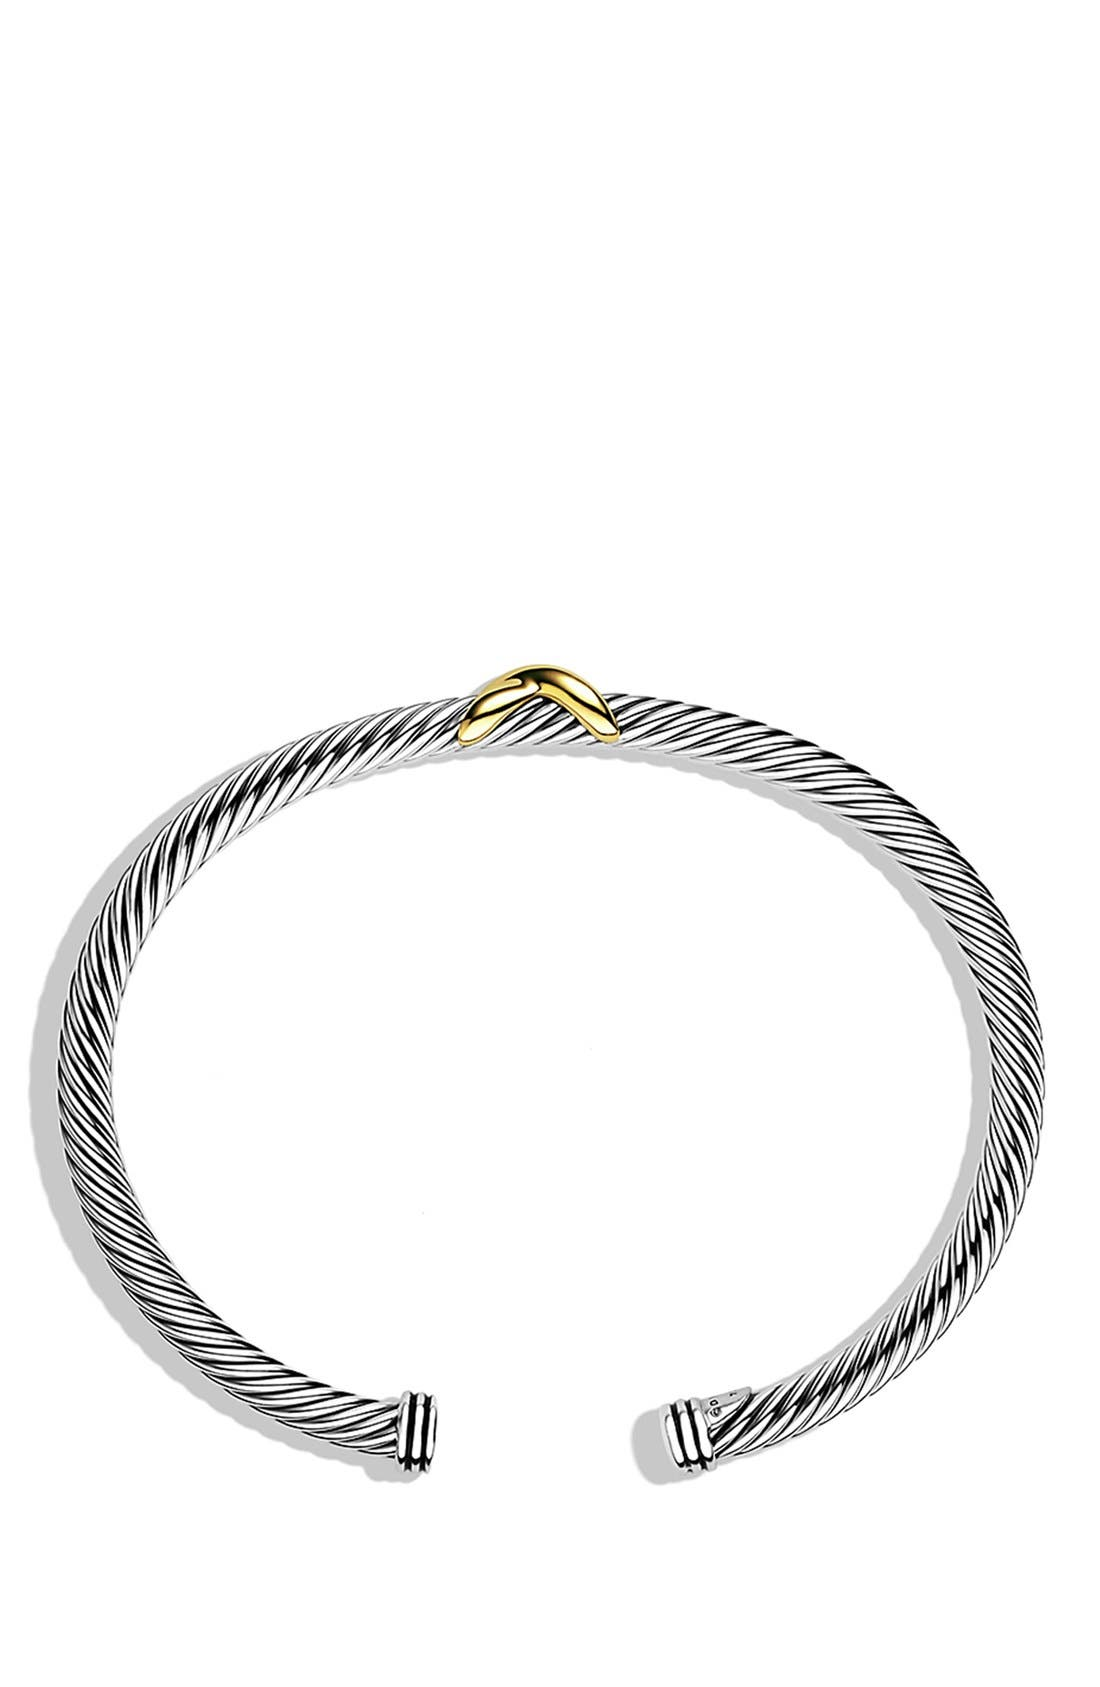 Alternate Image 2  - David Yurman 'X' Bracelet with Gold